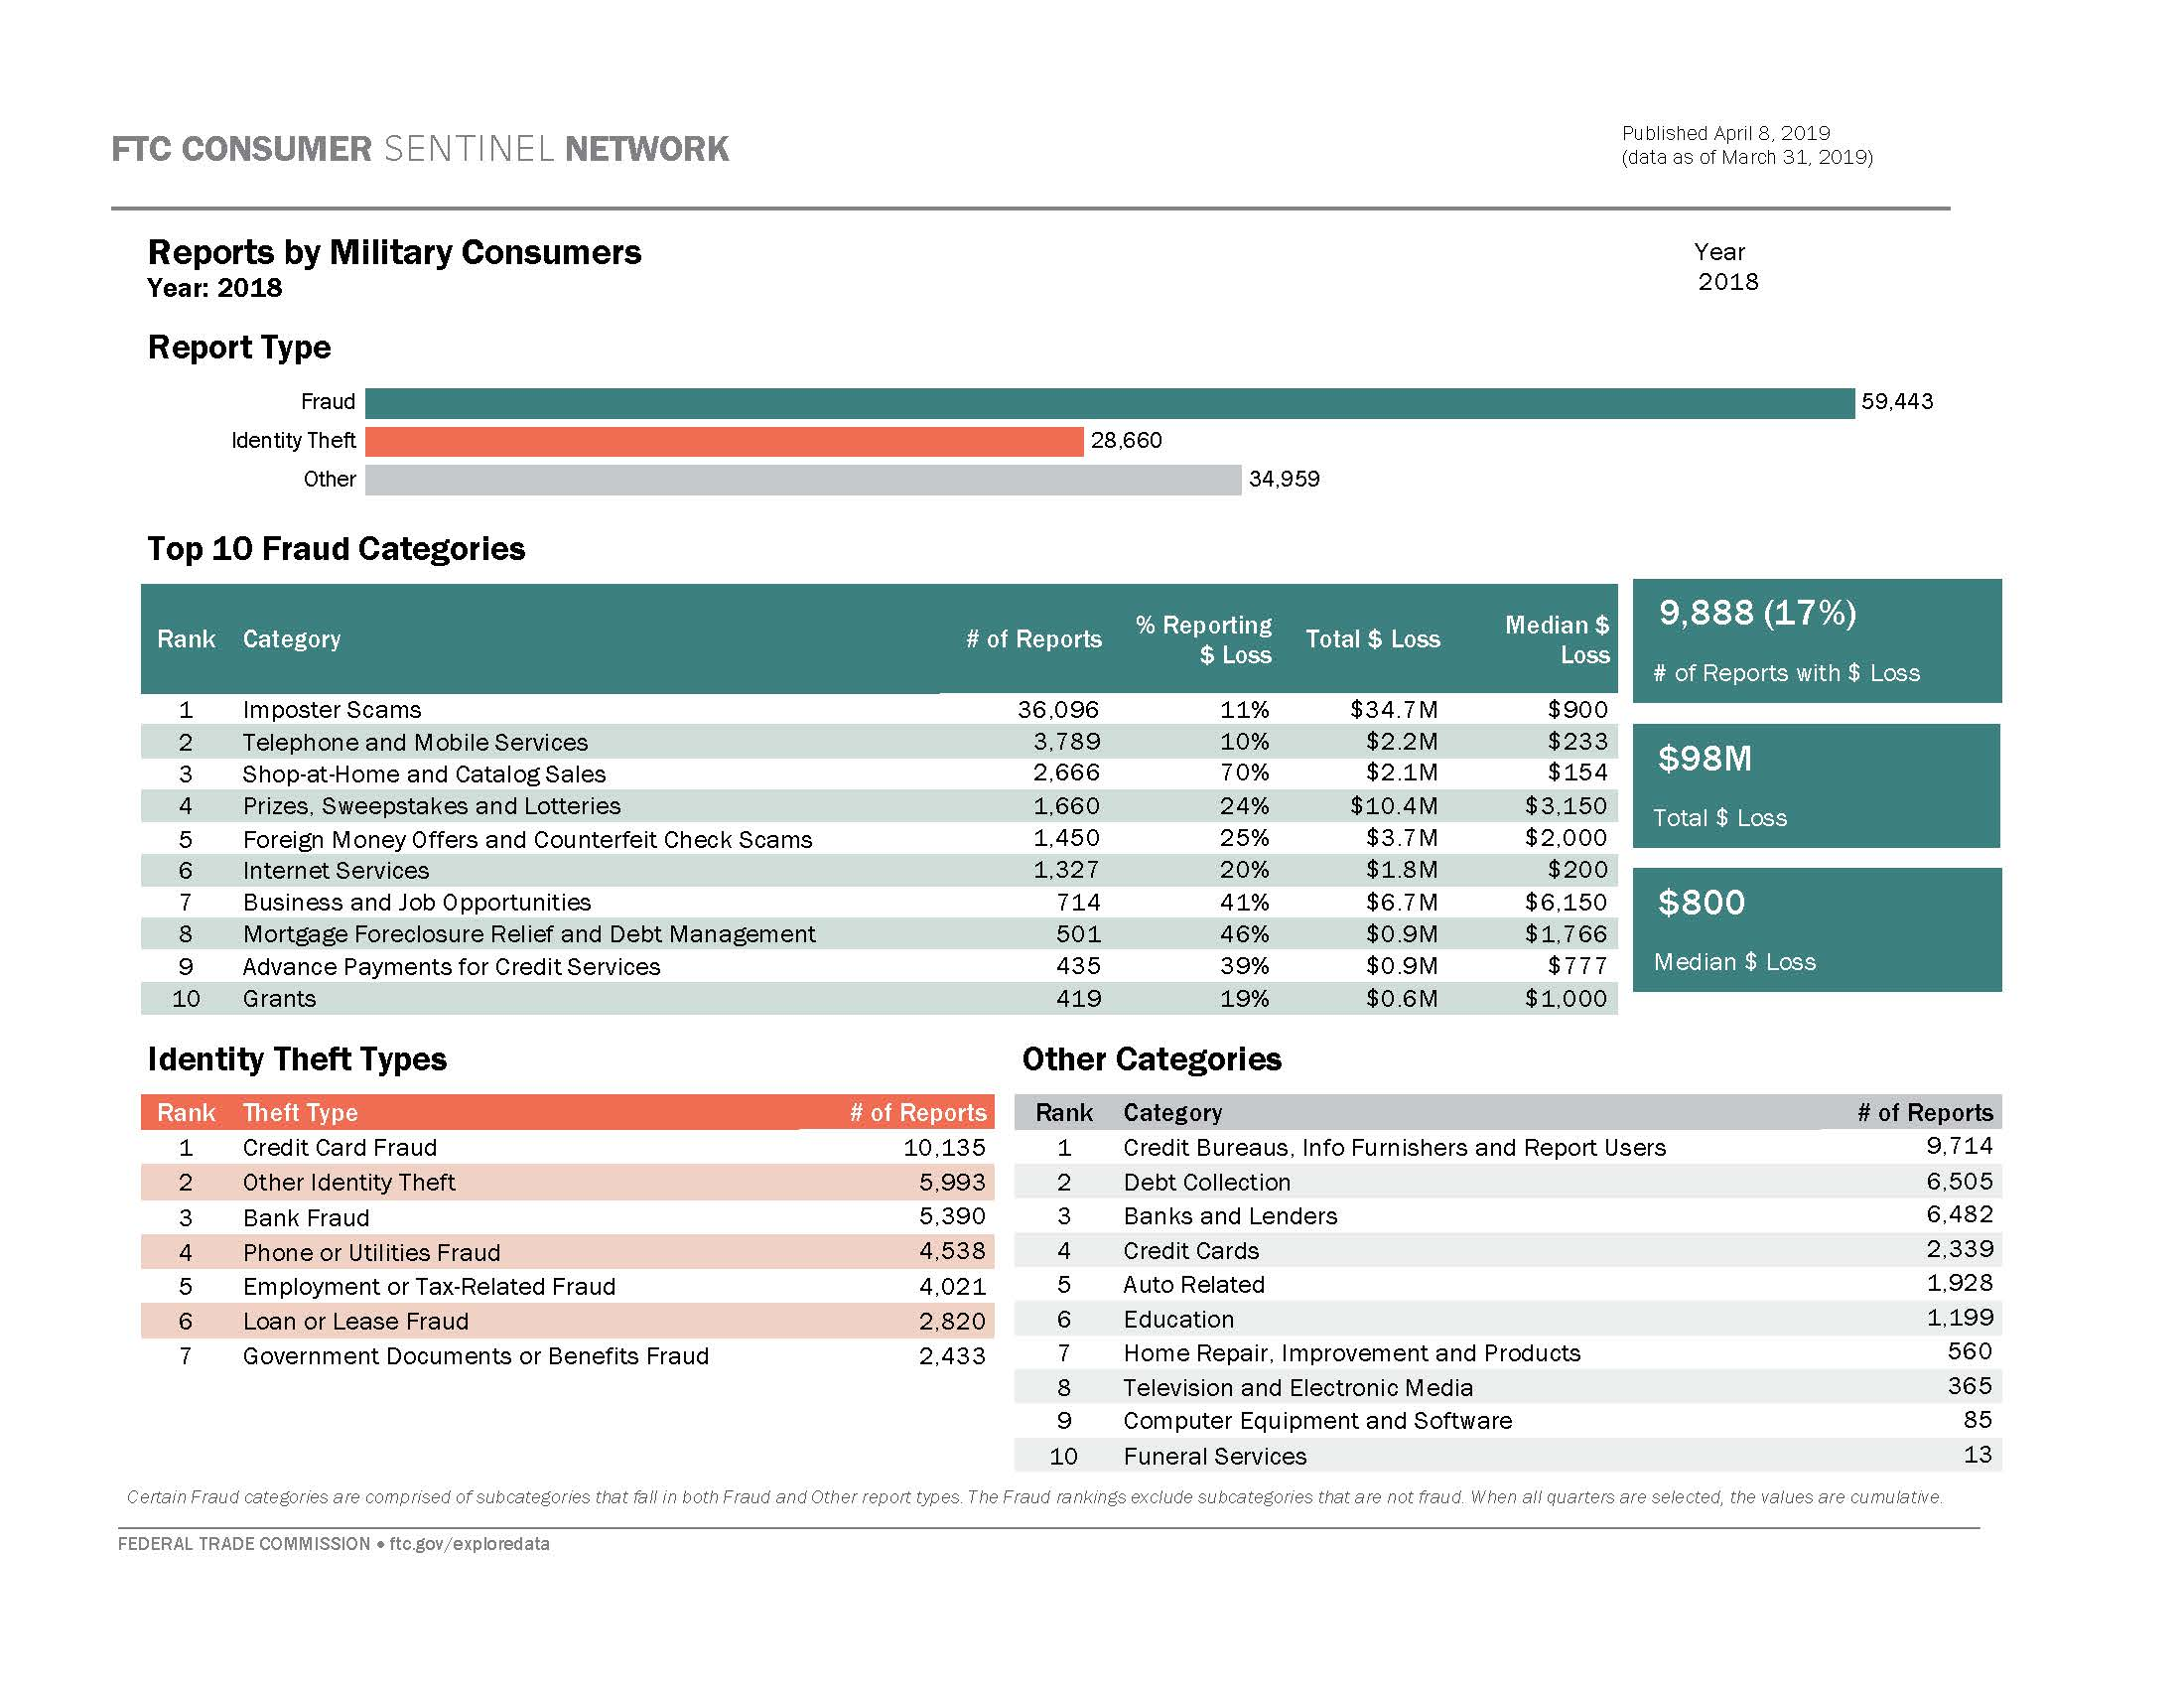 Link to interactive dashboard showing breakdown of report types and top reported categories for fraud, id theft, and other consumer problems based on military consumer reports.